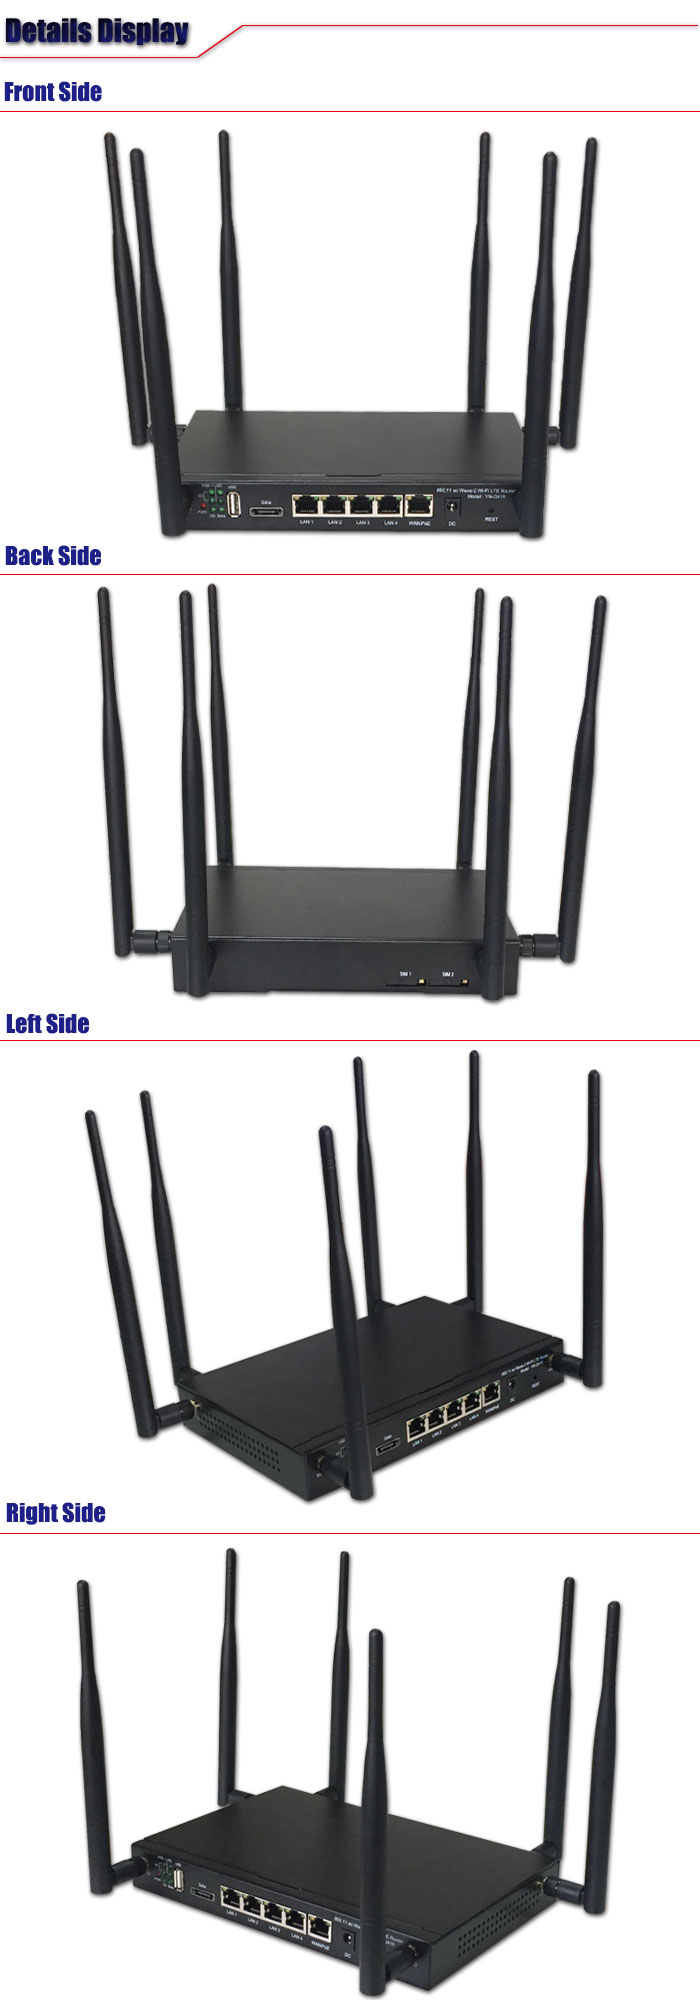 802.11ac Dual Band 3g 4g Sim Card Openwrt Slot Wifi Wireless Router